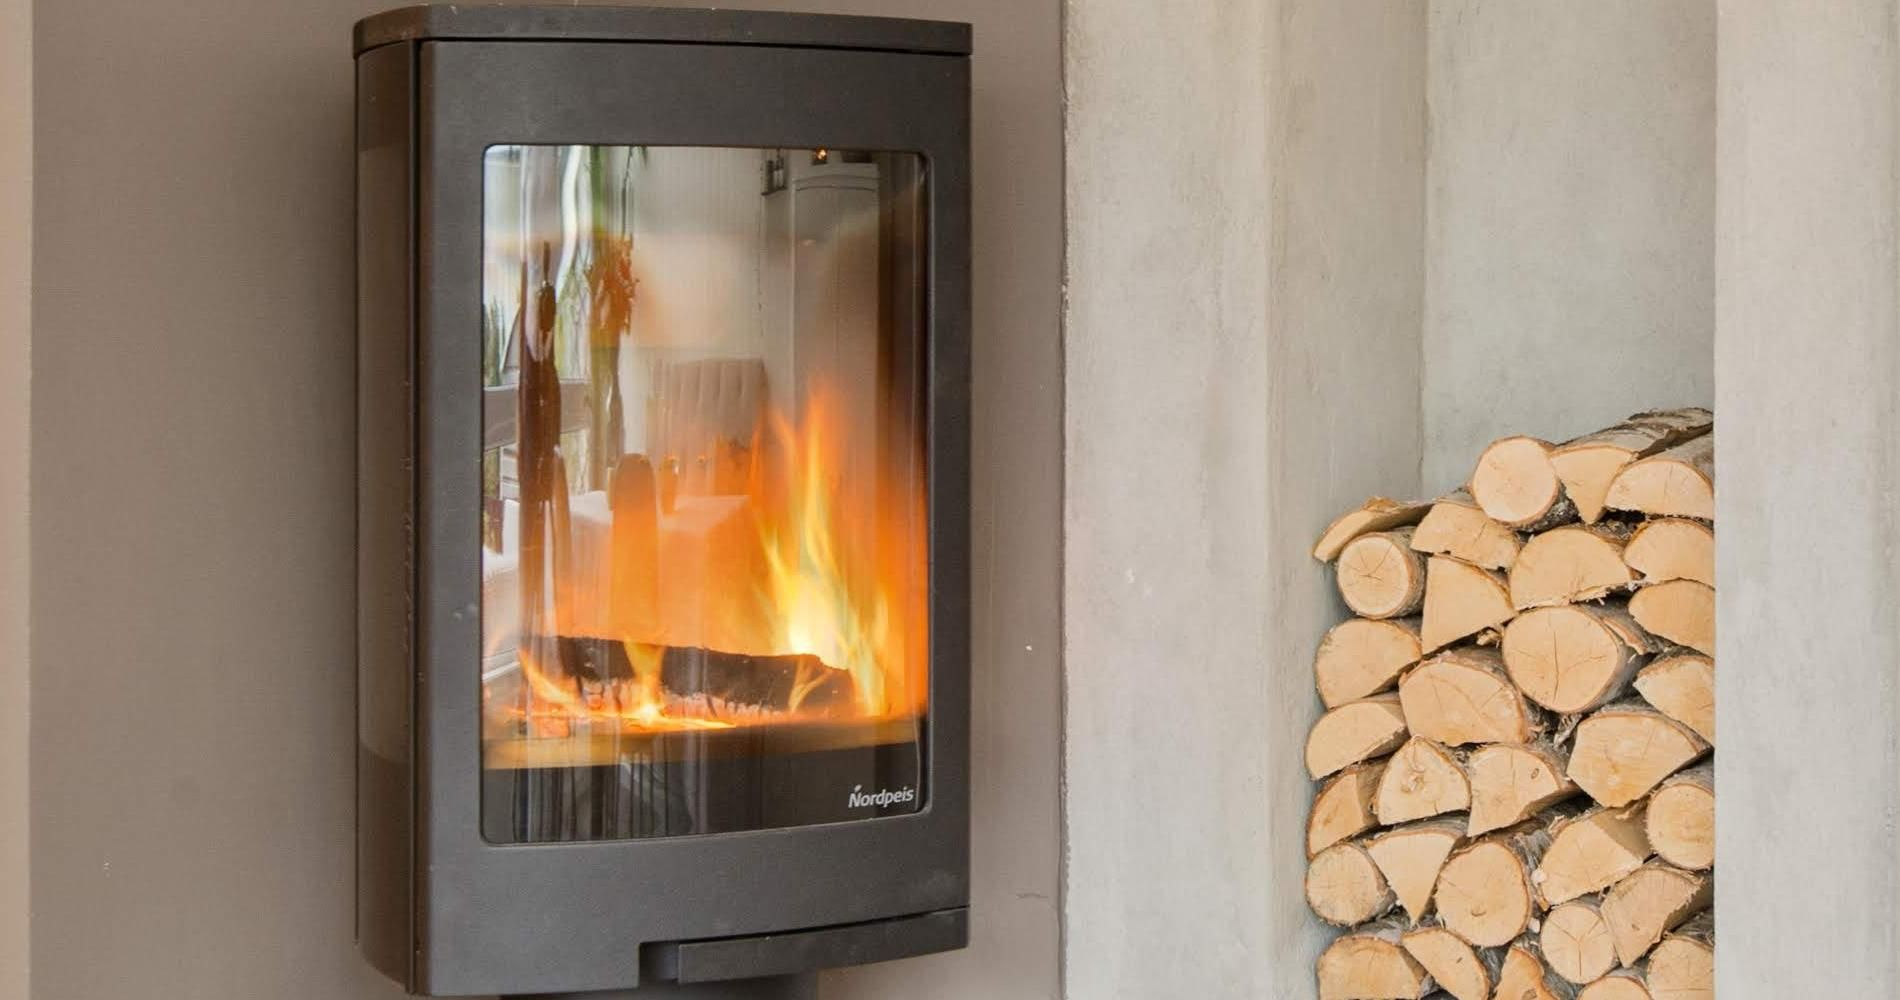 During the winter months, the risk of household fires